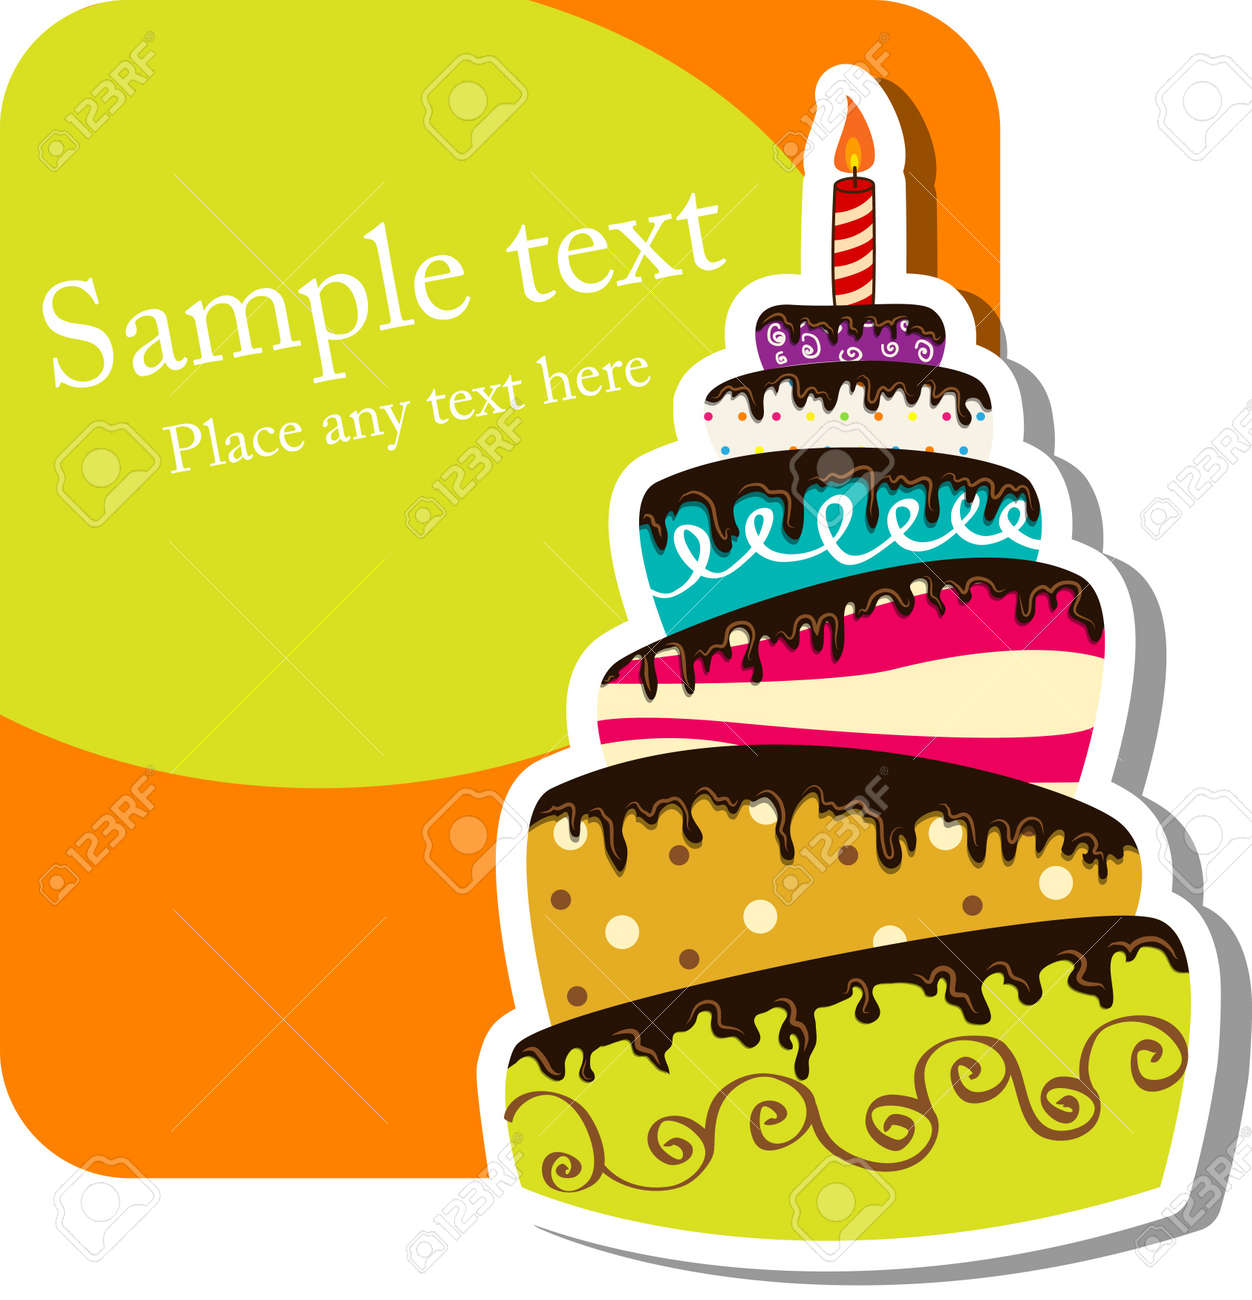 92753 Birthday Cake Cliparts Stock Vector And Royalty Free